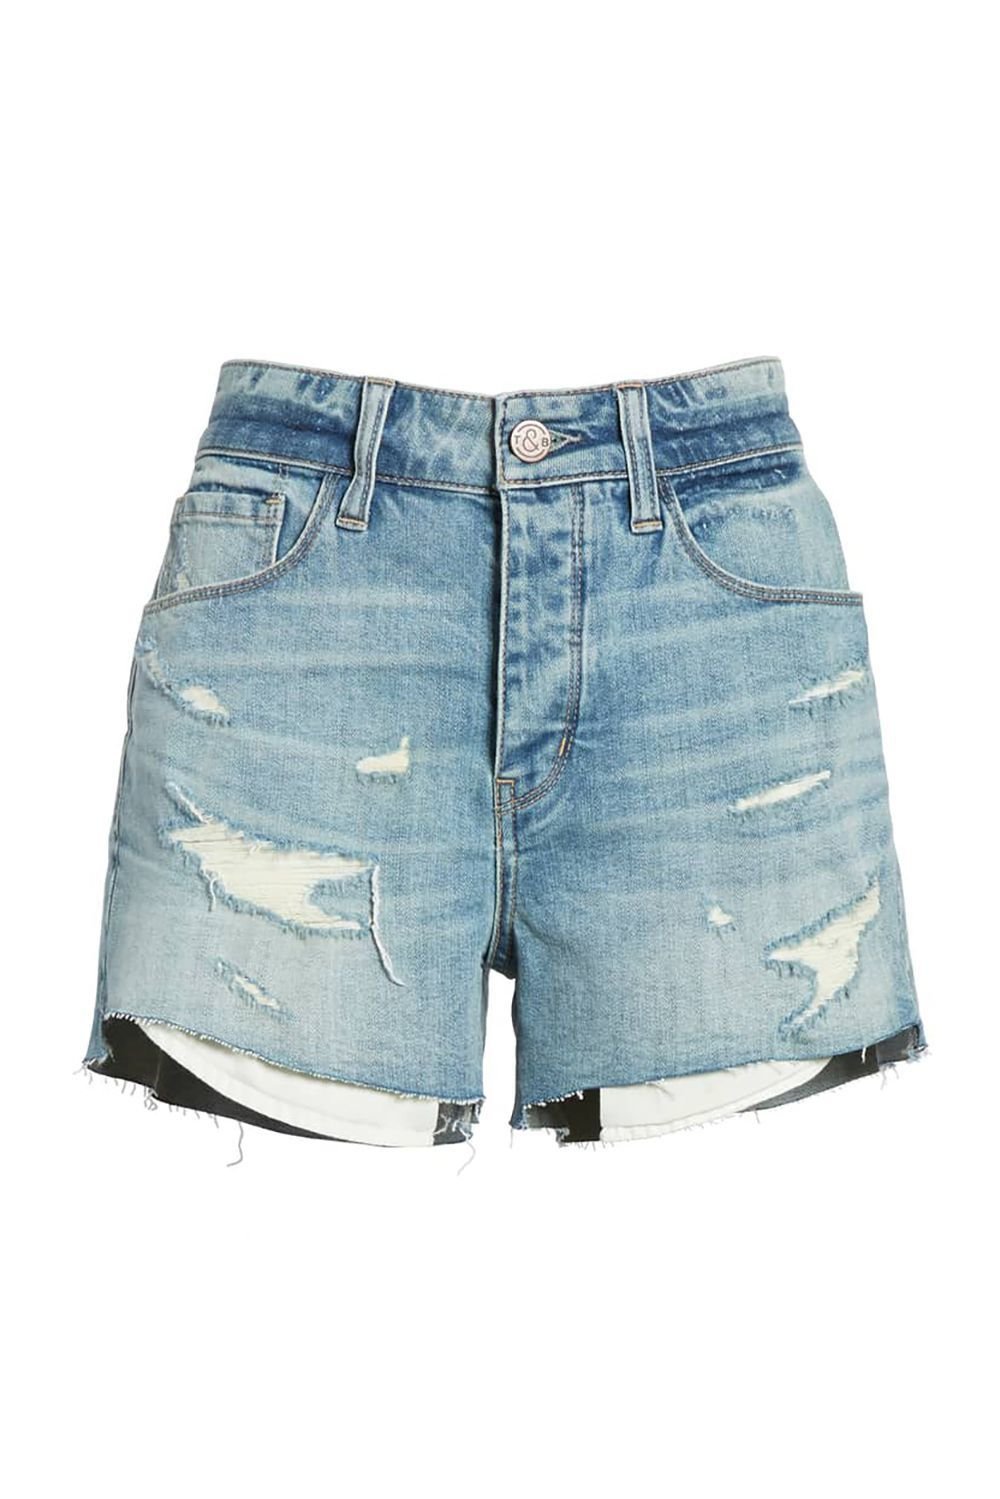 bcd554e54 12 Best Denim Shorts of 2019 for Women - Distressed, High Waisted, and More